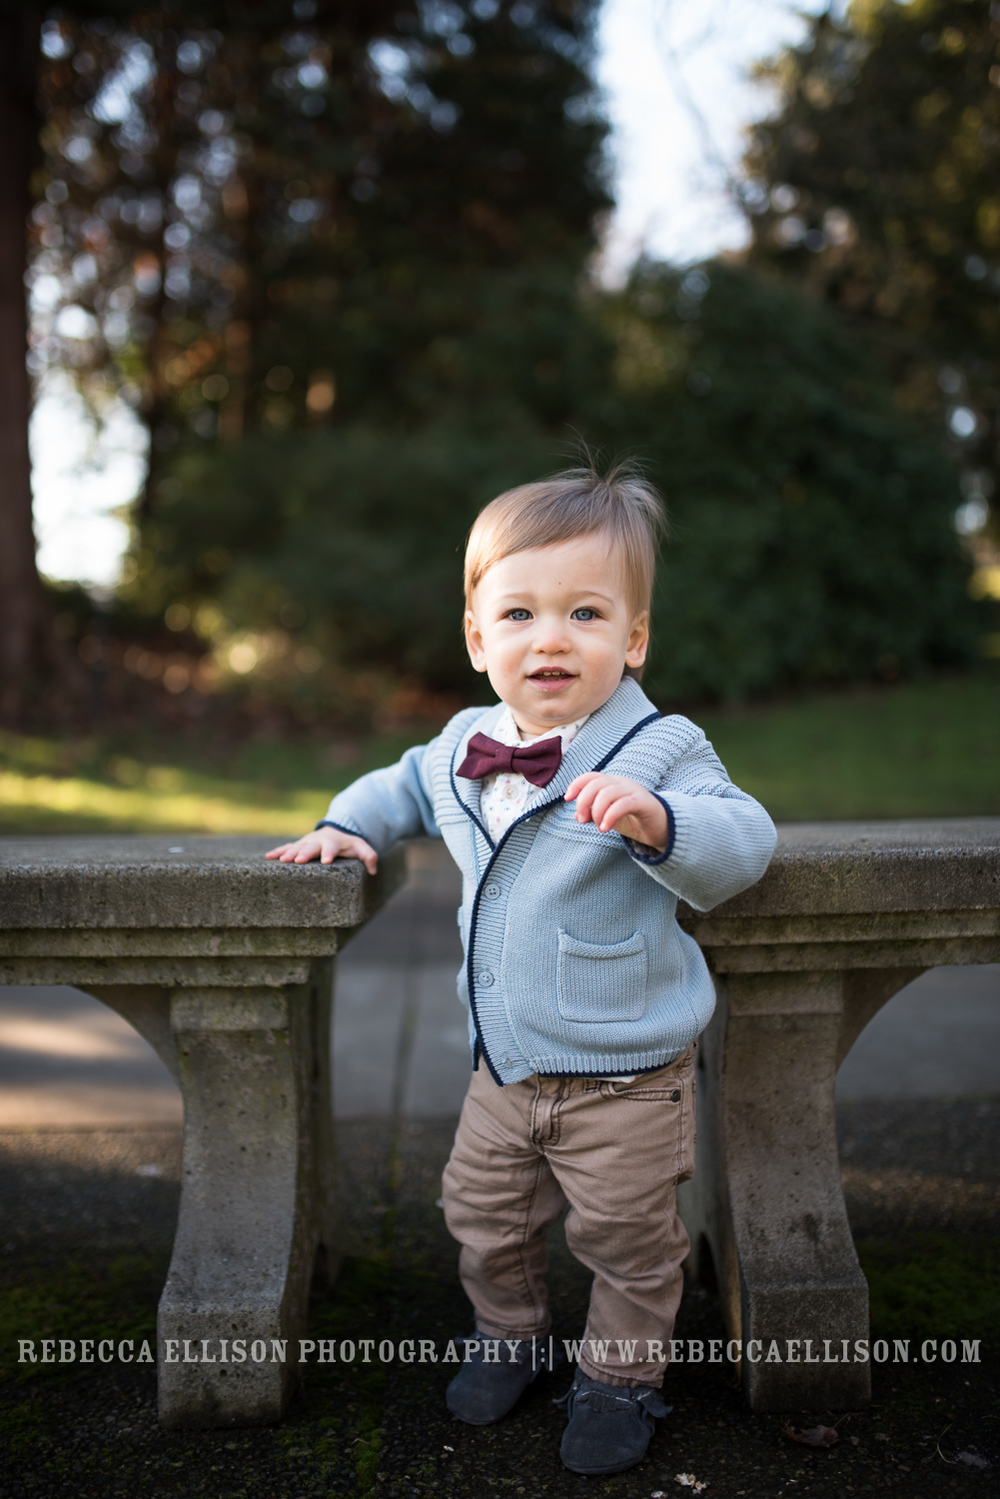 one year old stands in bow tie between benches at park